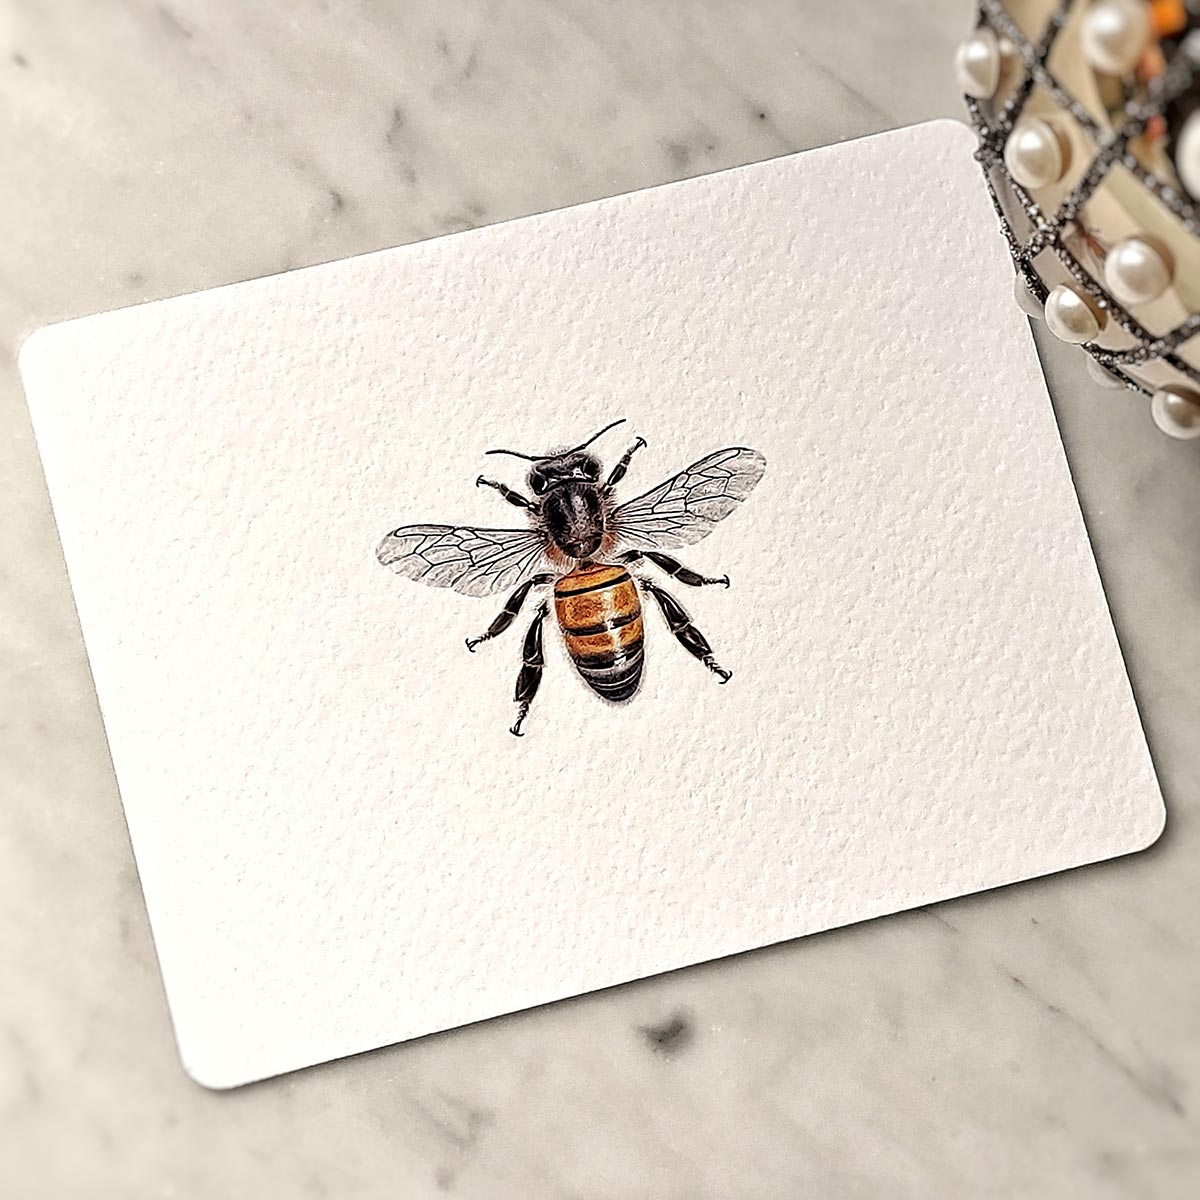 The Punctilious Mr. P's 'Bees' note cards